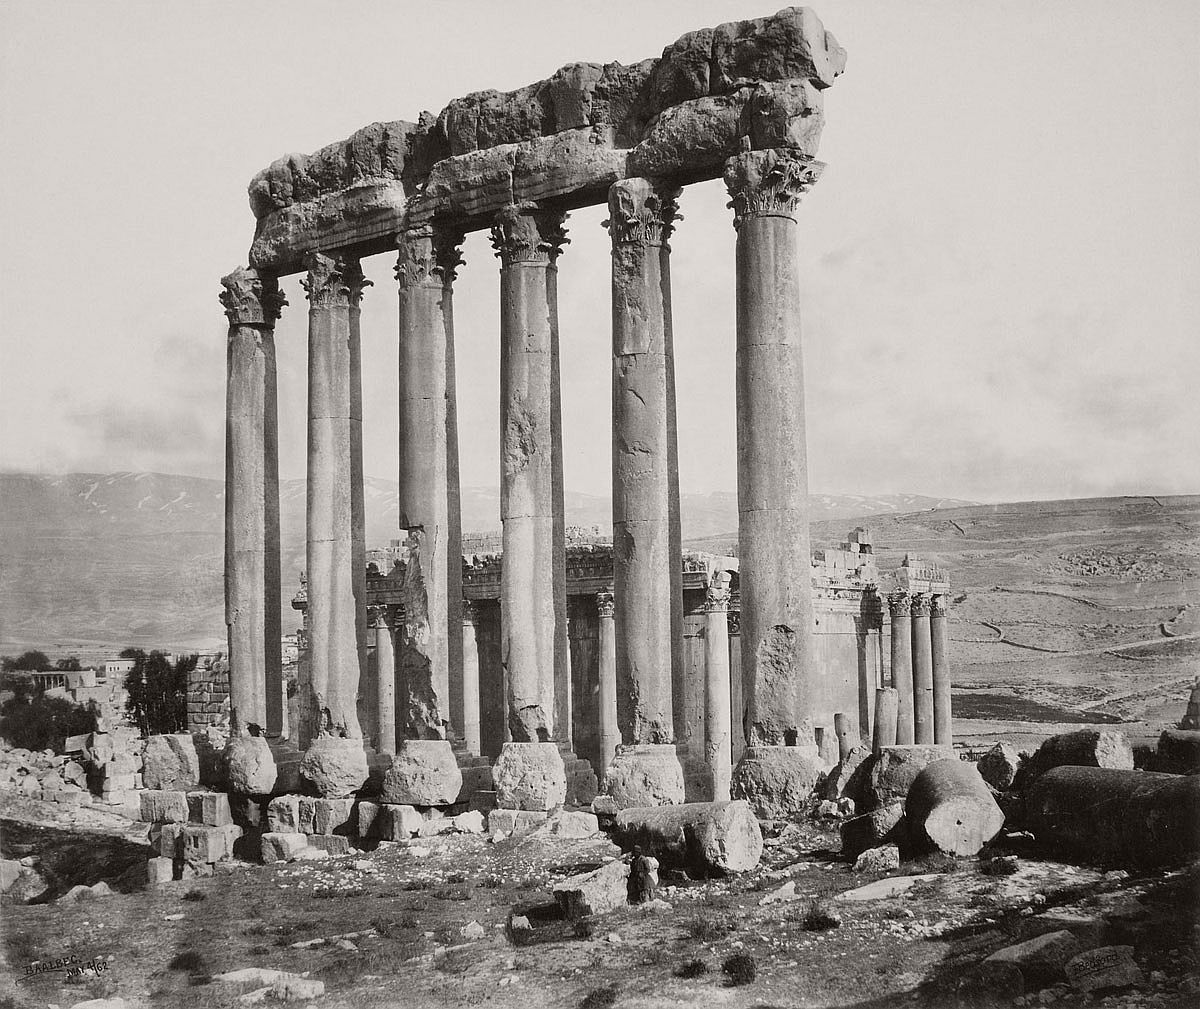 Francis Bedford (1815-94) (photographer) The Temple of the Sun and Temple of Jupiter [Baalbek, Lebanon] 4 May 1862